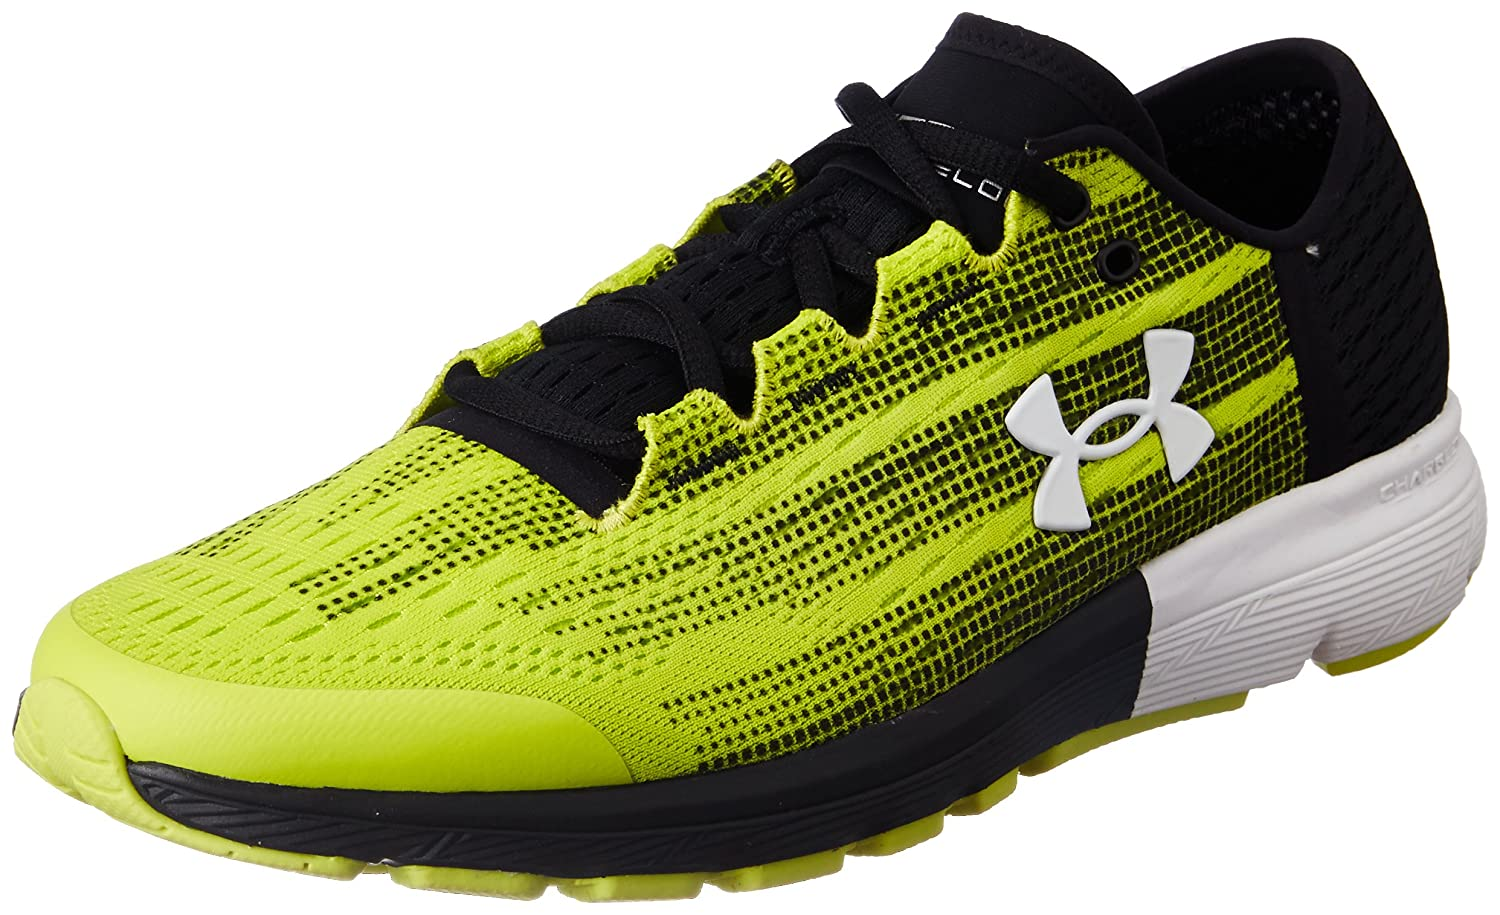 hot sale online 71e7c c0cfb Under Armour Men's UA Speedform Velociti Running Shoes